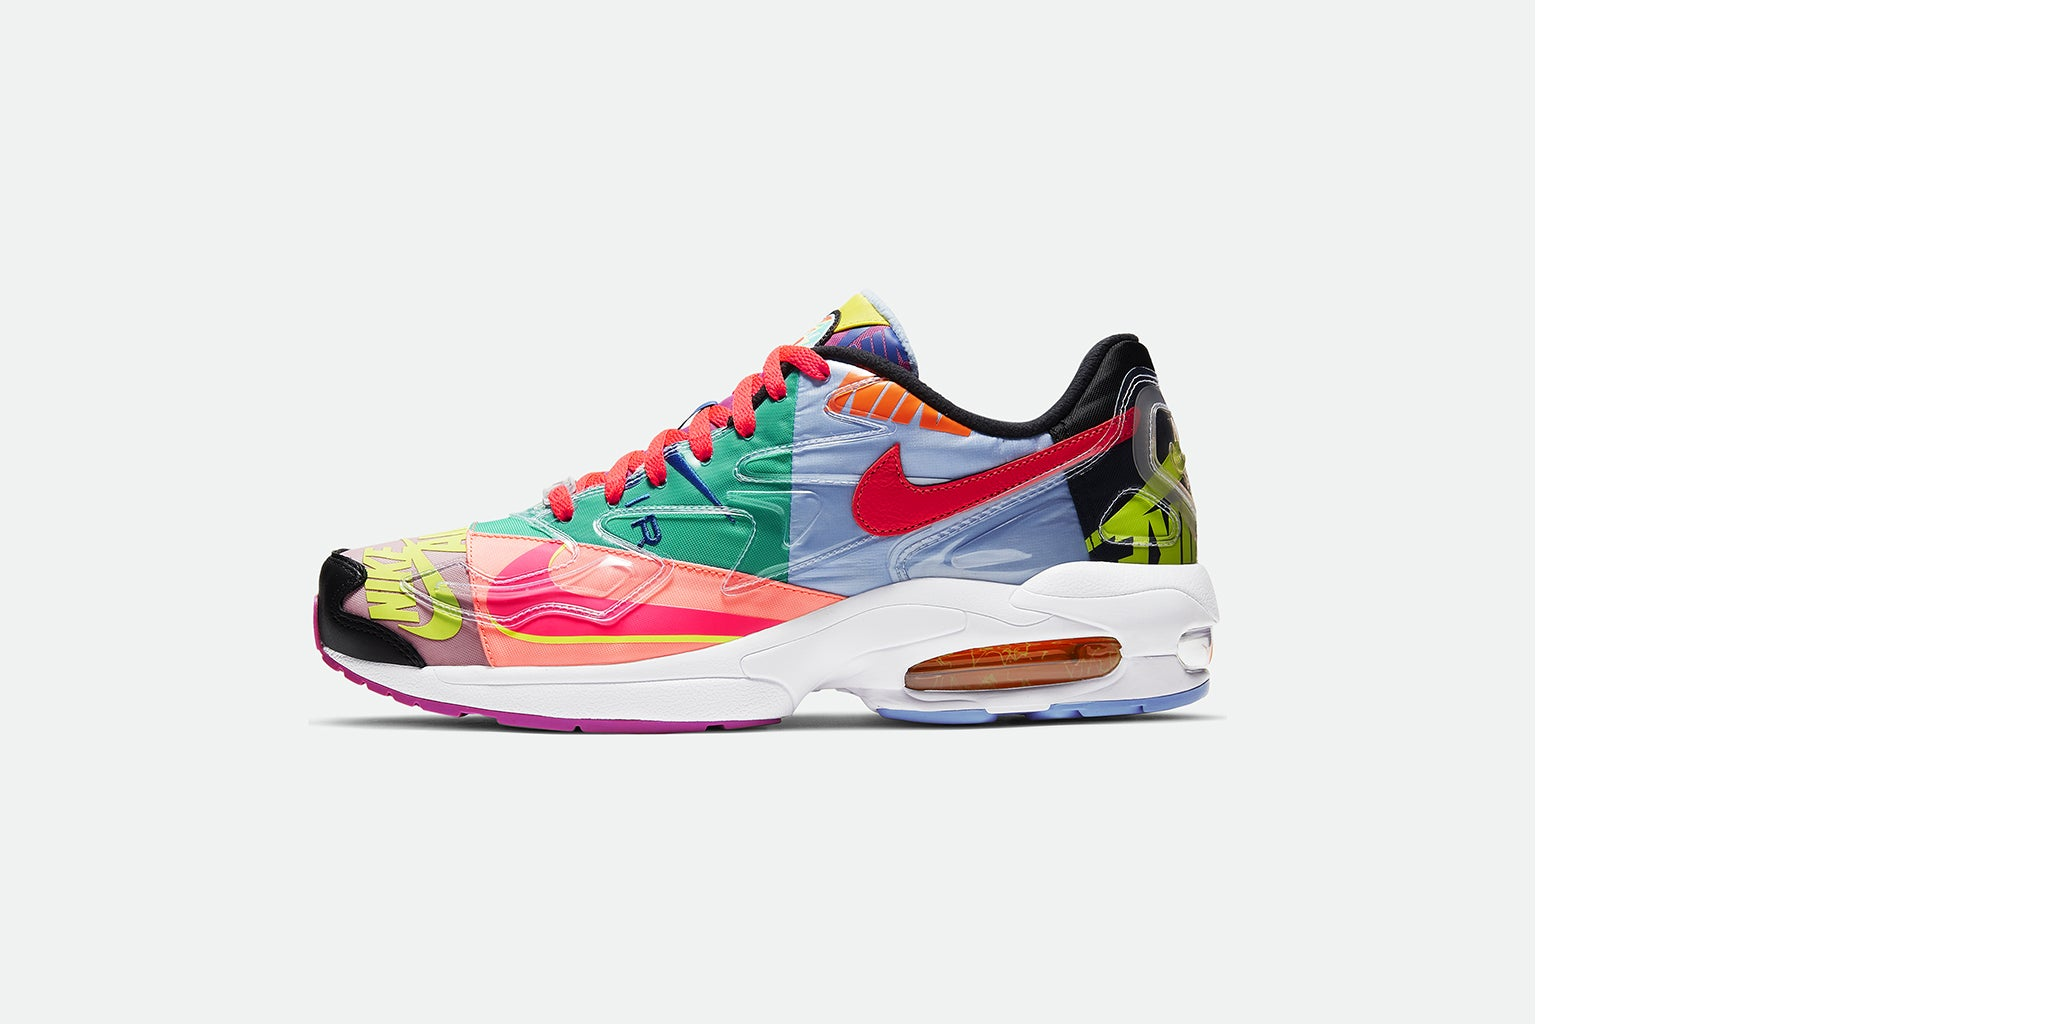 9e020646aa bulletin: the Nike x Atmos Air Max 2 Light releasing this week ...